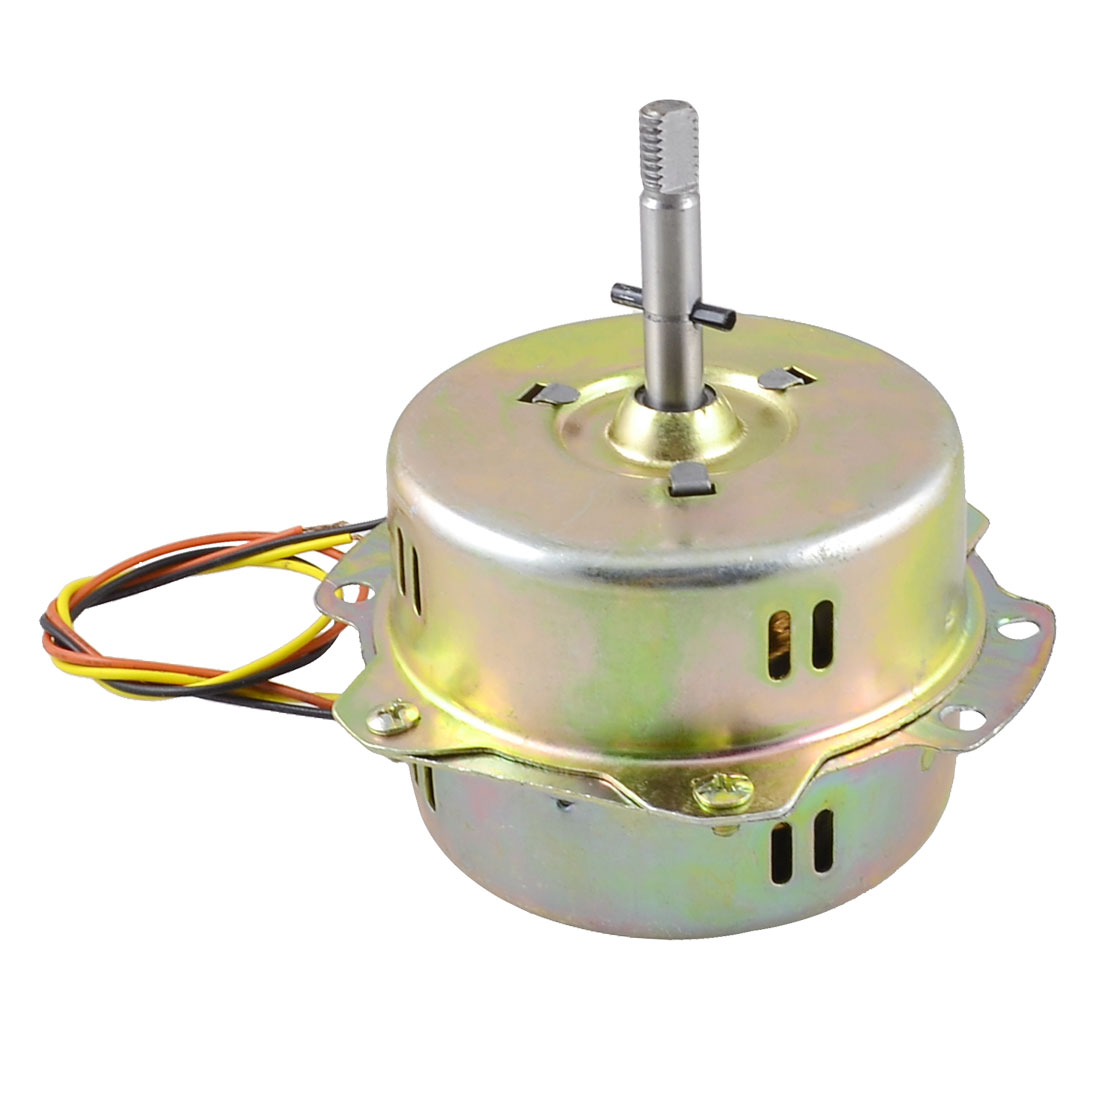 AC-220V-45W-3-Cable-3-1-Dia-Micro-Motor-Brass-Tone-for-Exhaust-Fan